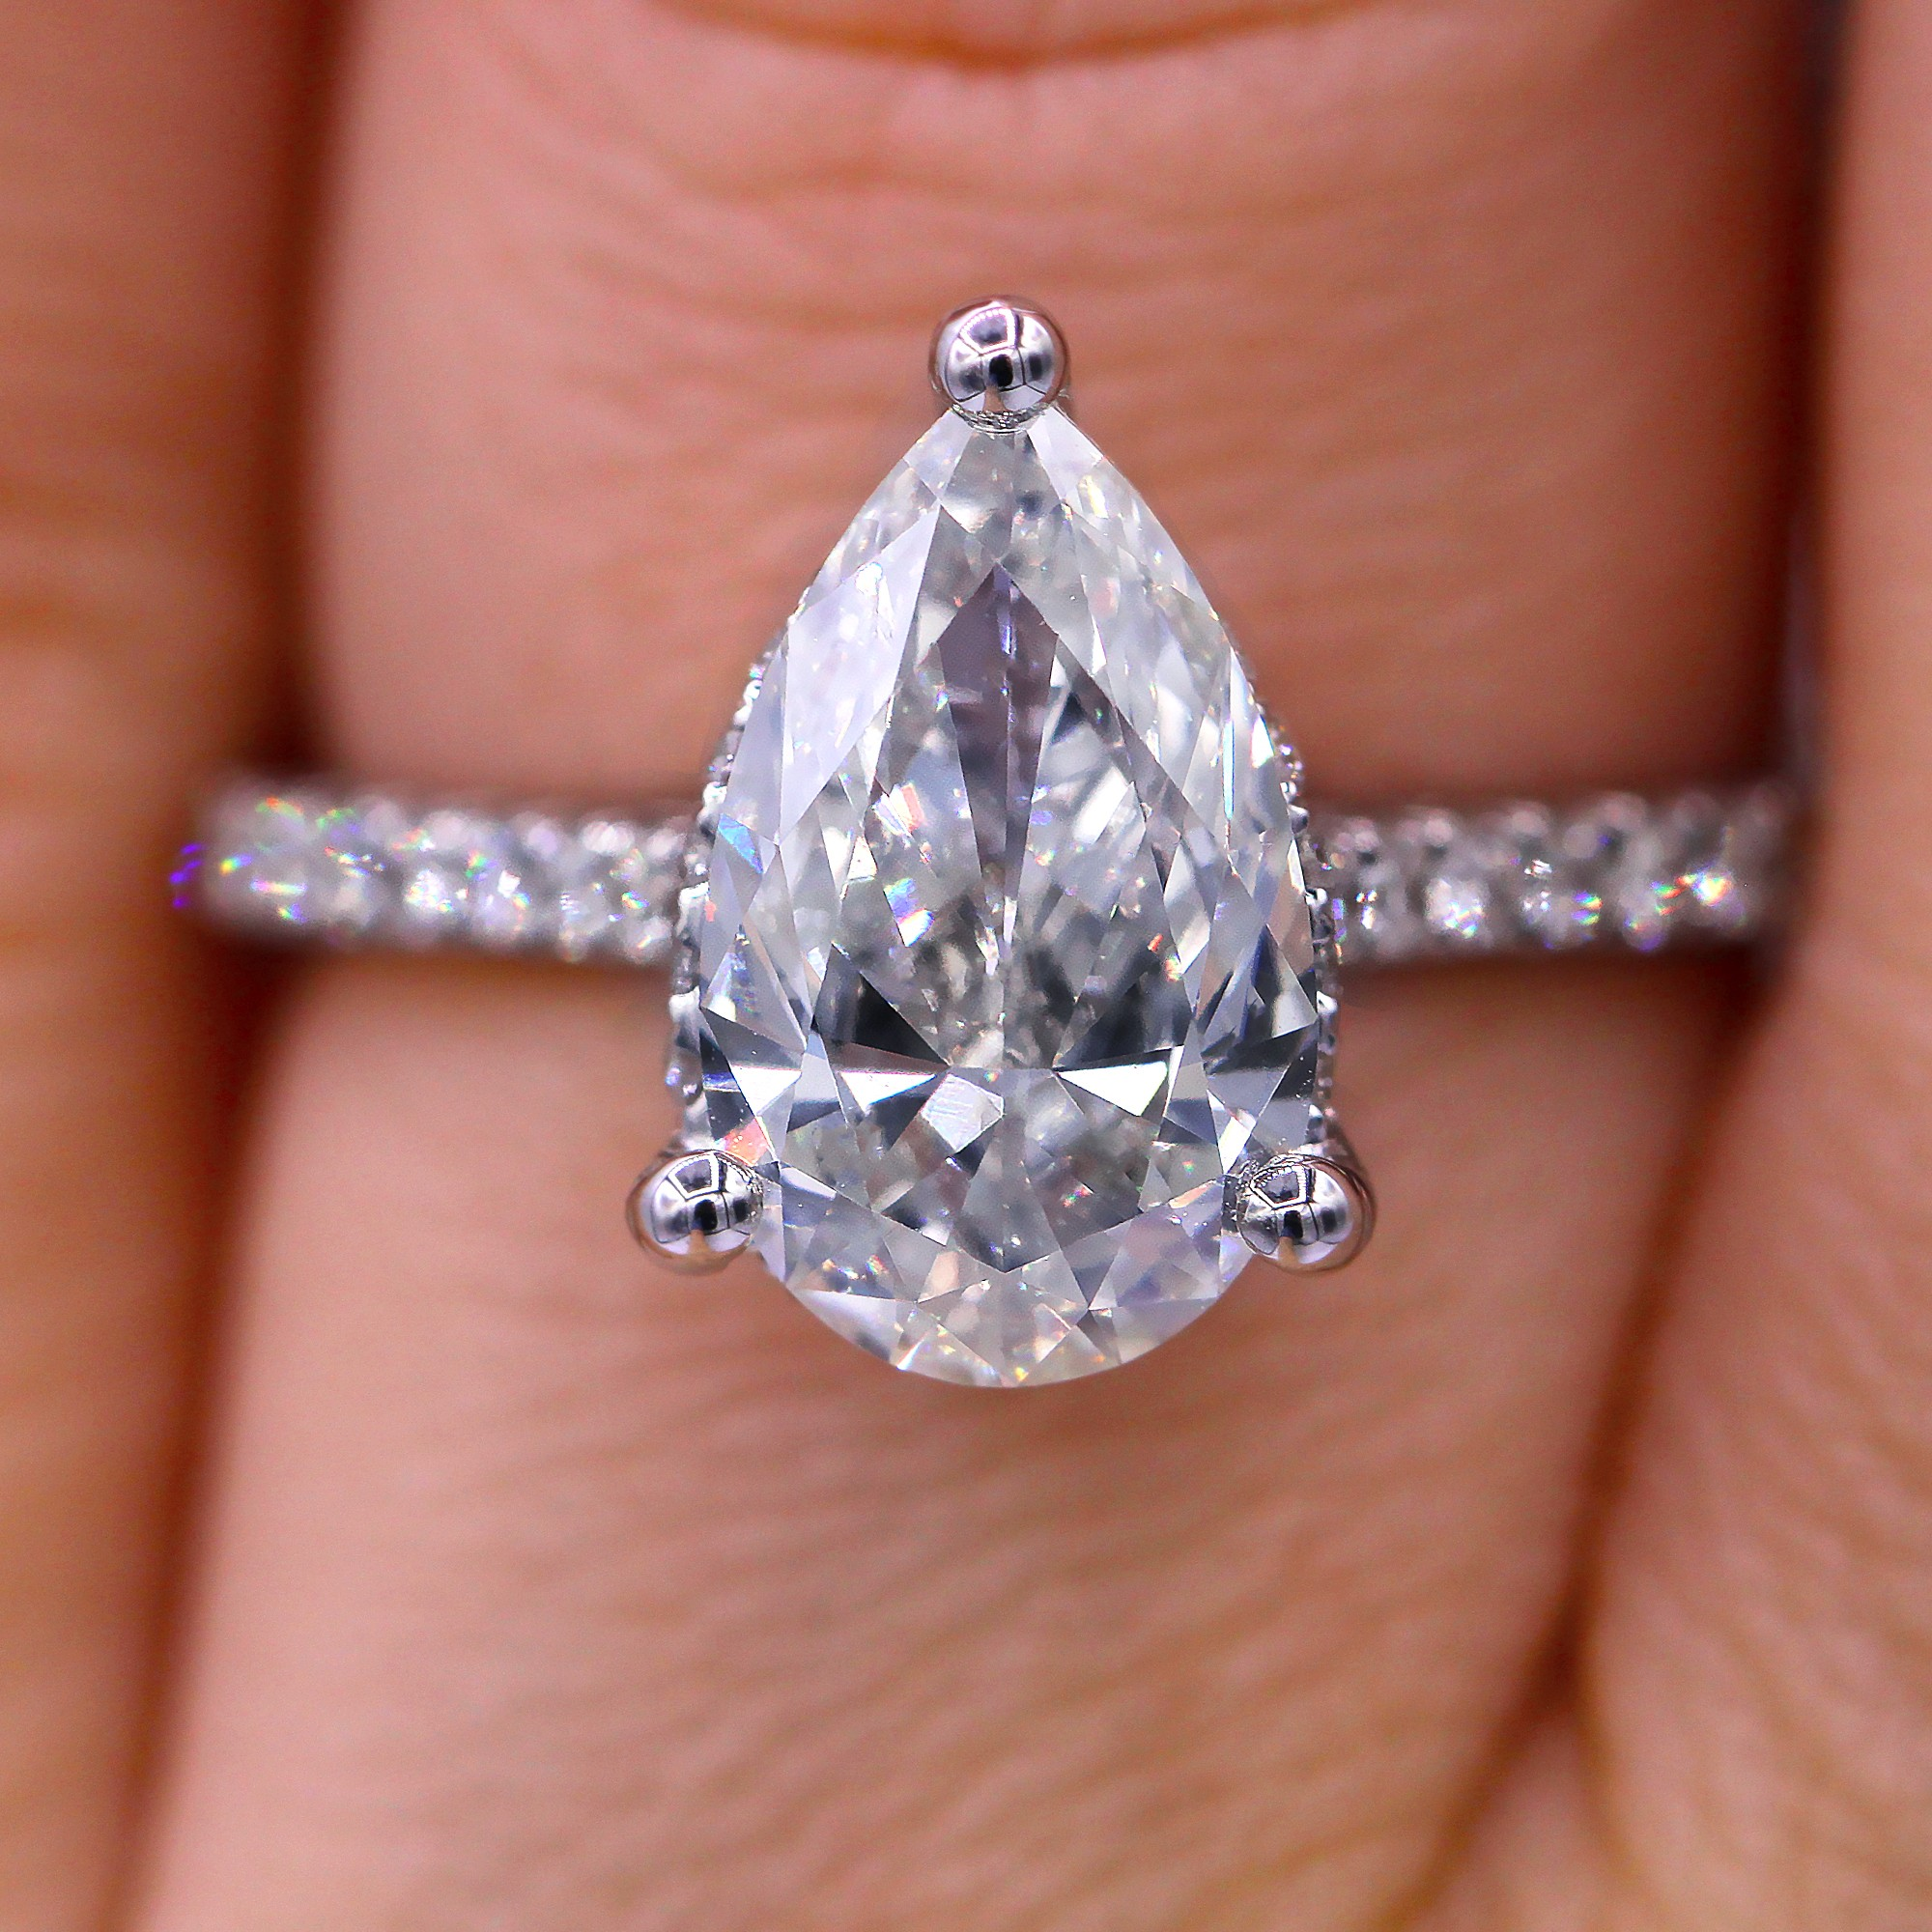 Elegant  2.00 carat pear cut diamond engagement ring